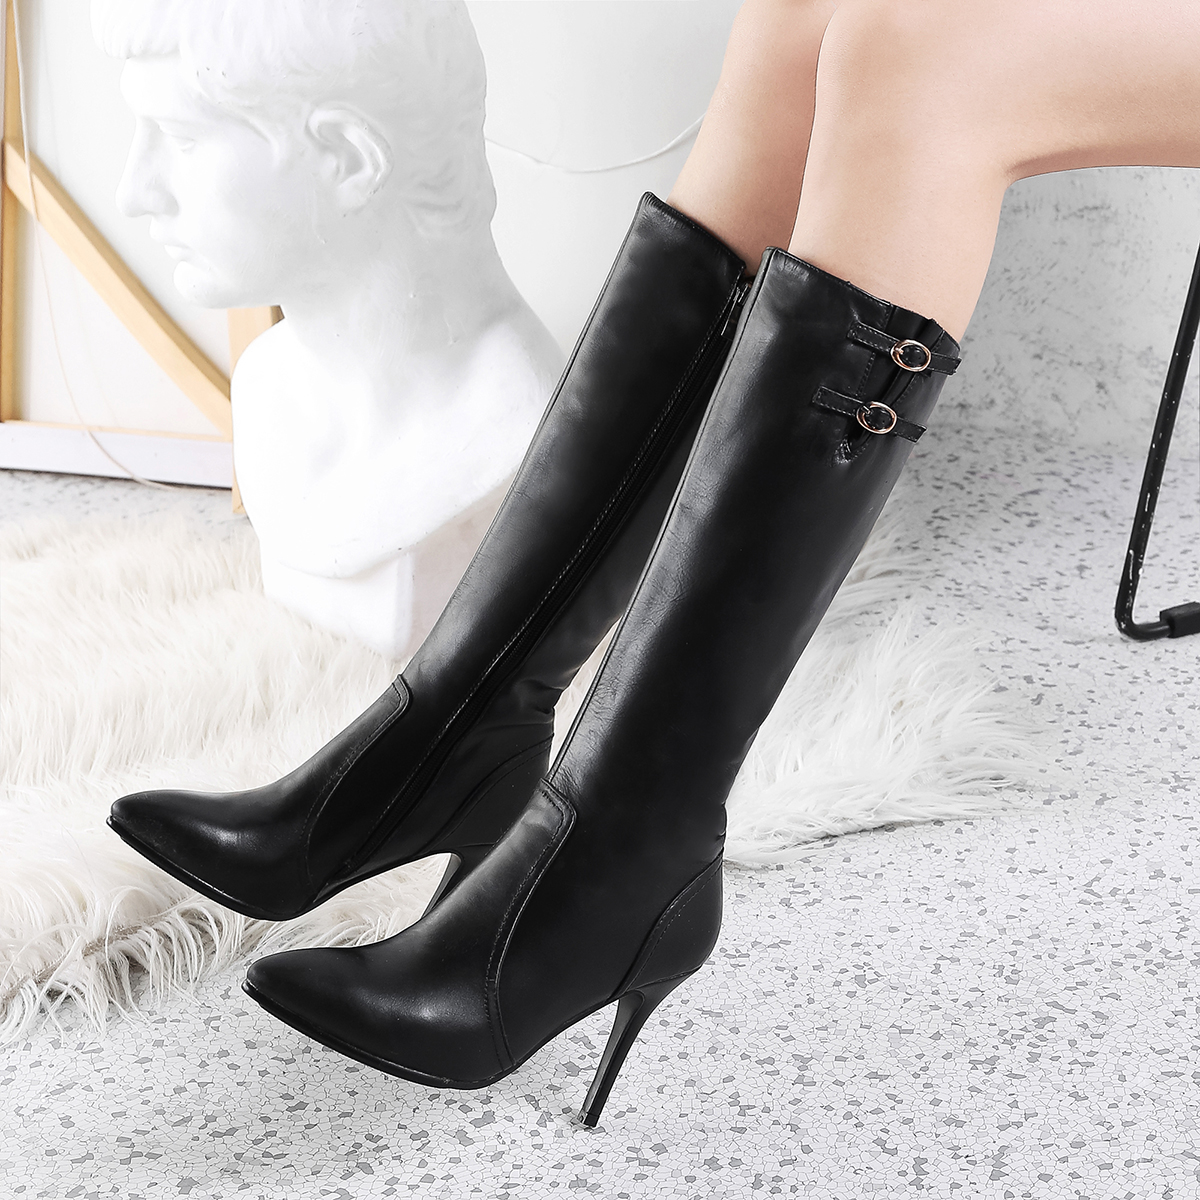 e9837964f87 Arden Furtado fashion women's shoes in winter 2019 pointed toe stilettos  heels zipper knee high boots black elegant pure color